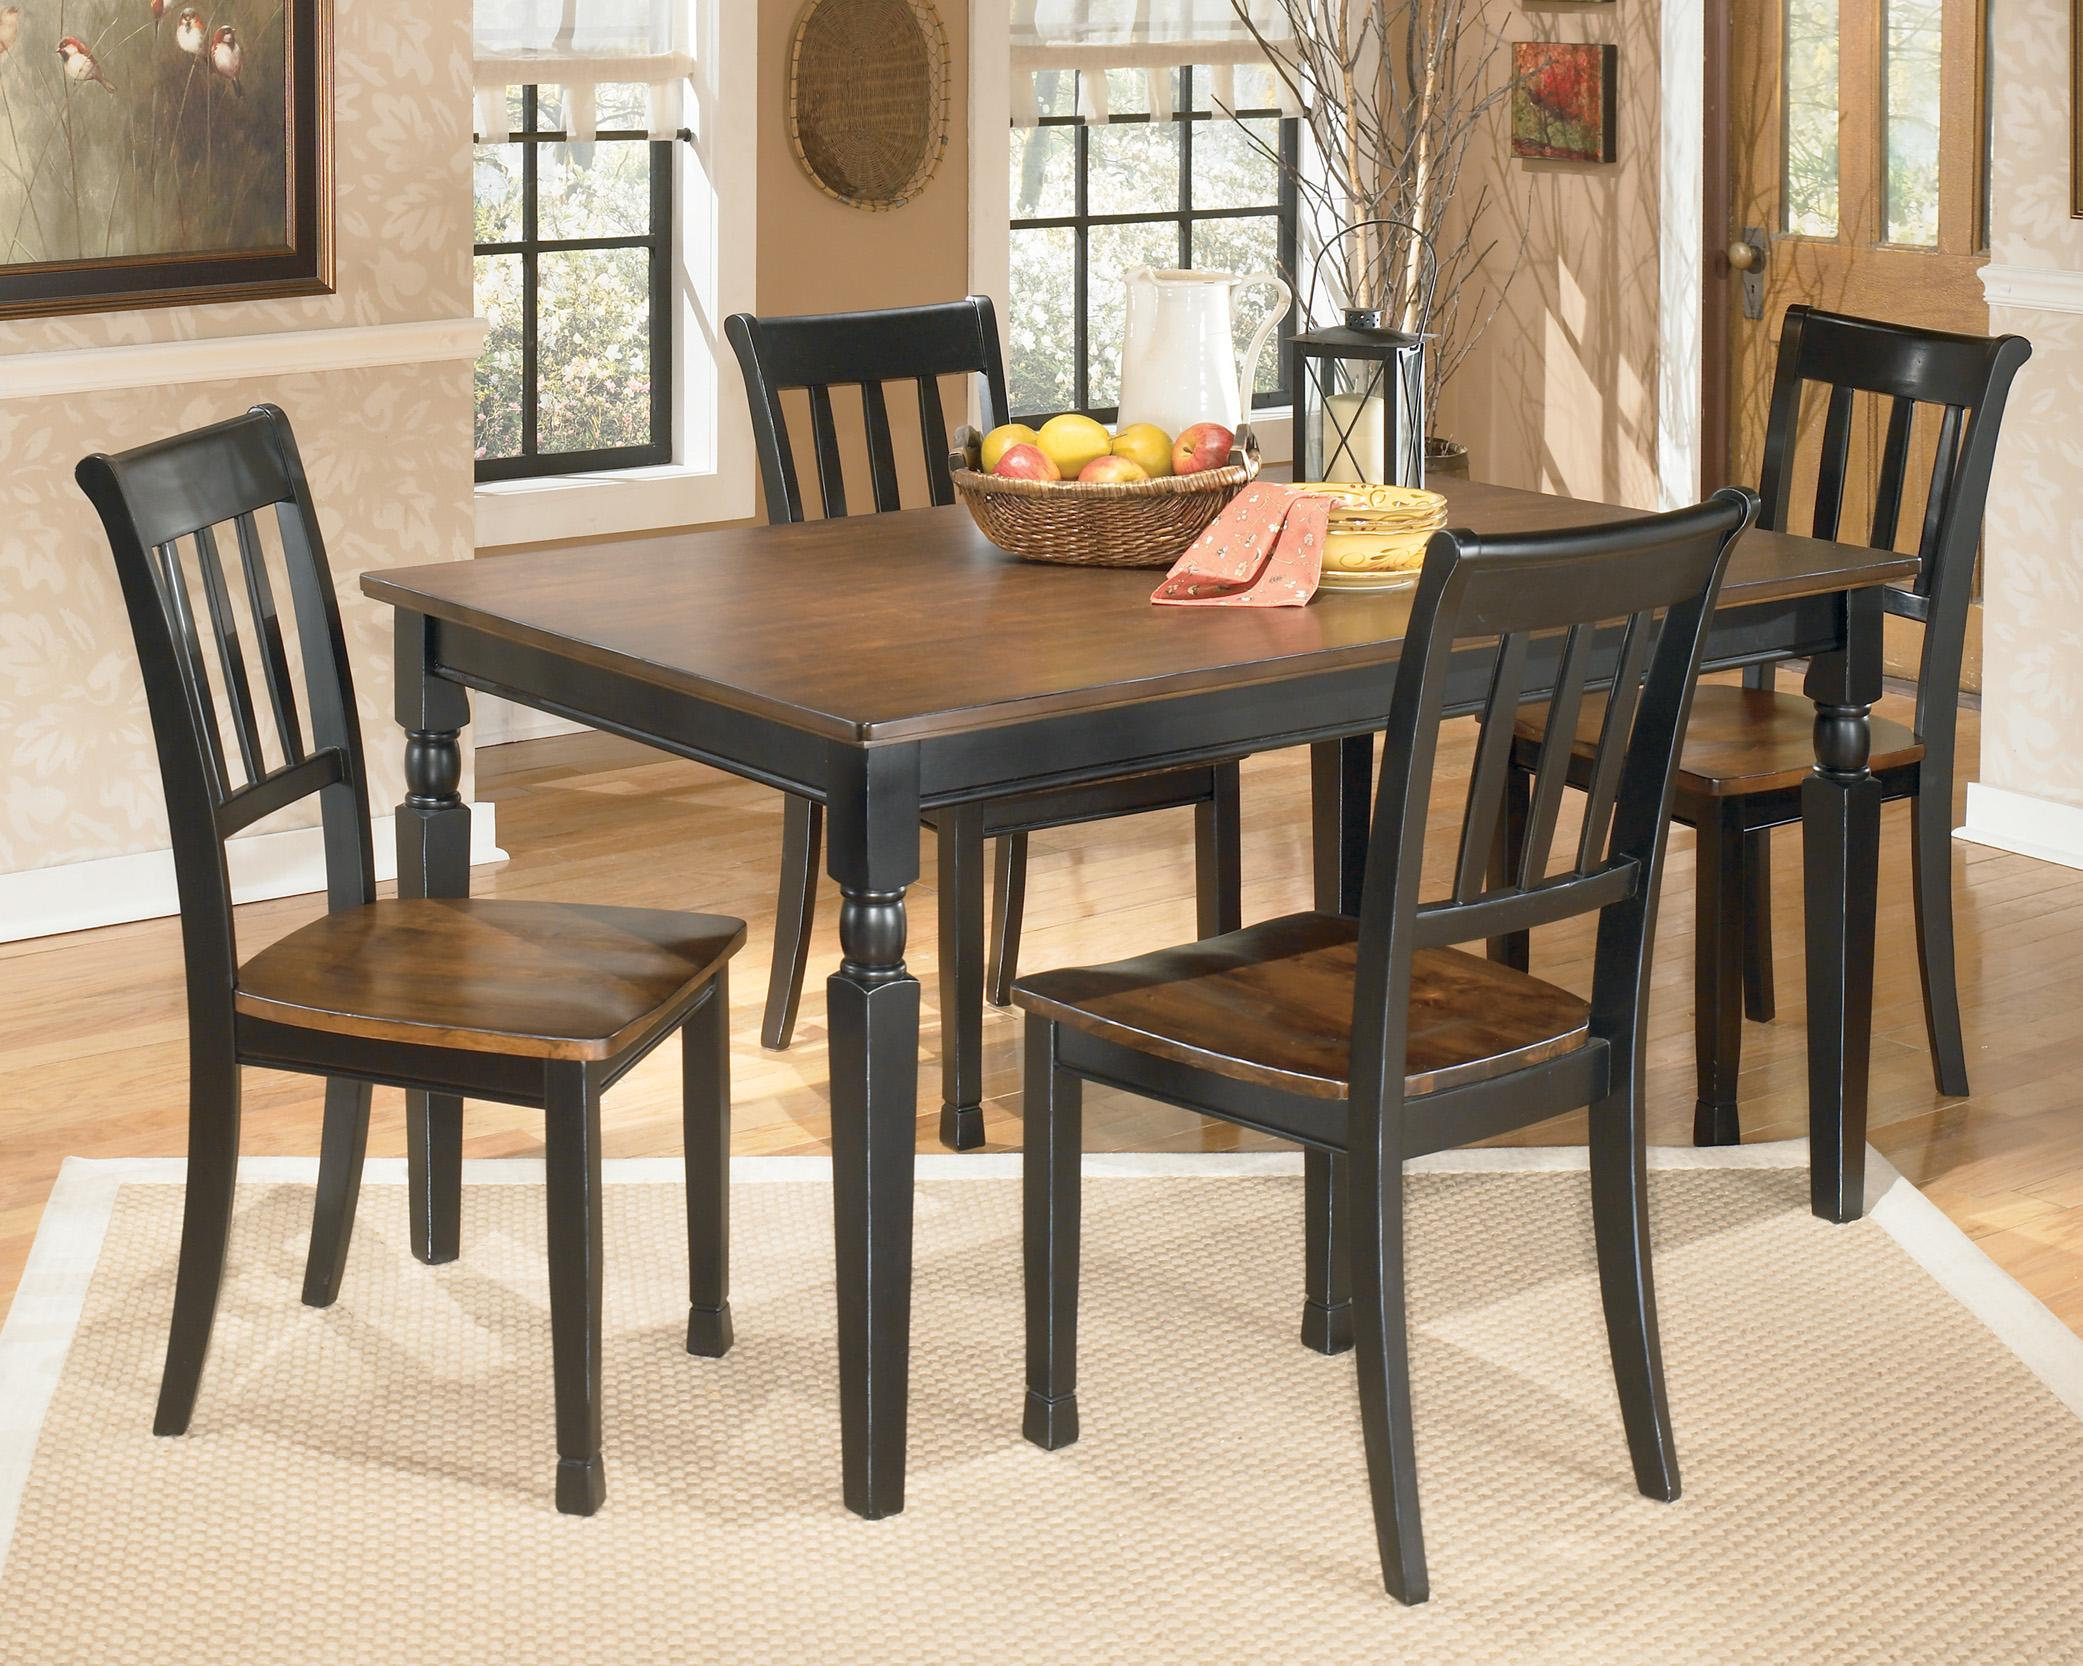 Signature Design by Ashley Owingsville 5-Piece Rectangular Dining Table Set - Item Number: D580-25+4x02